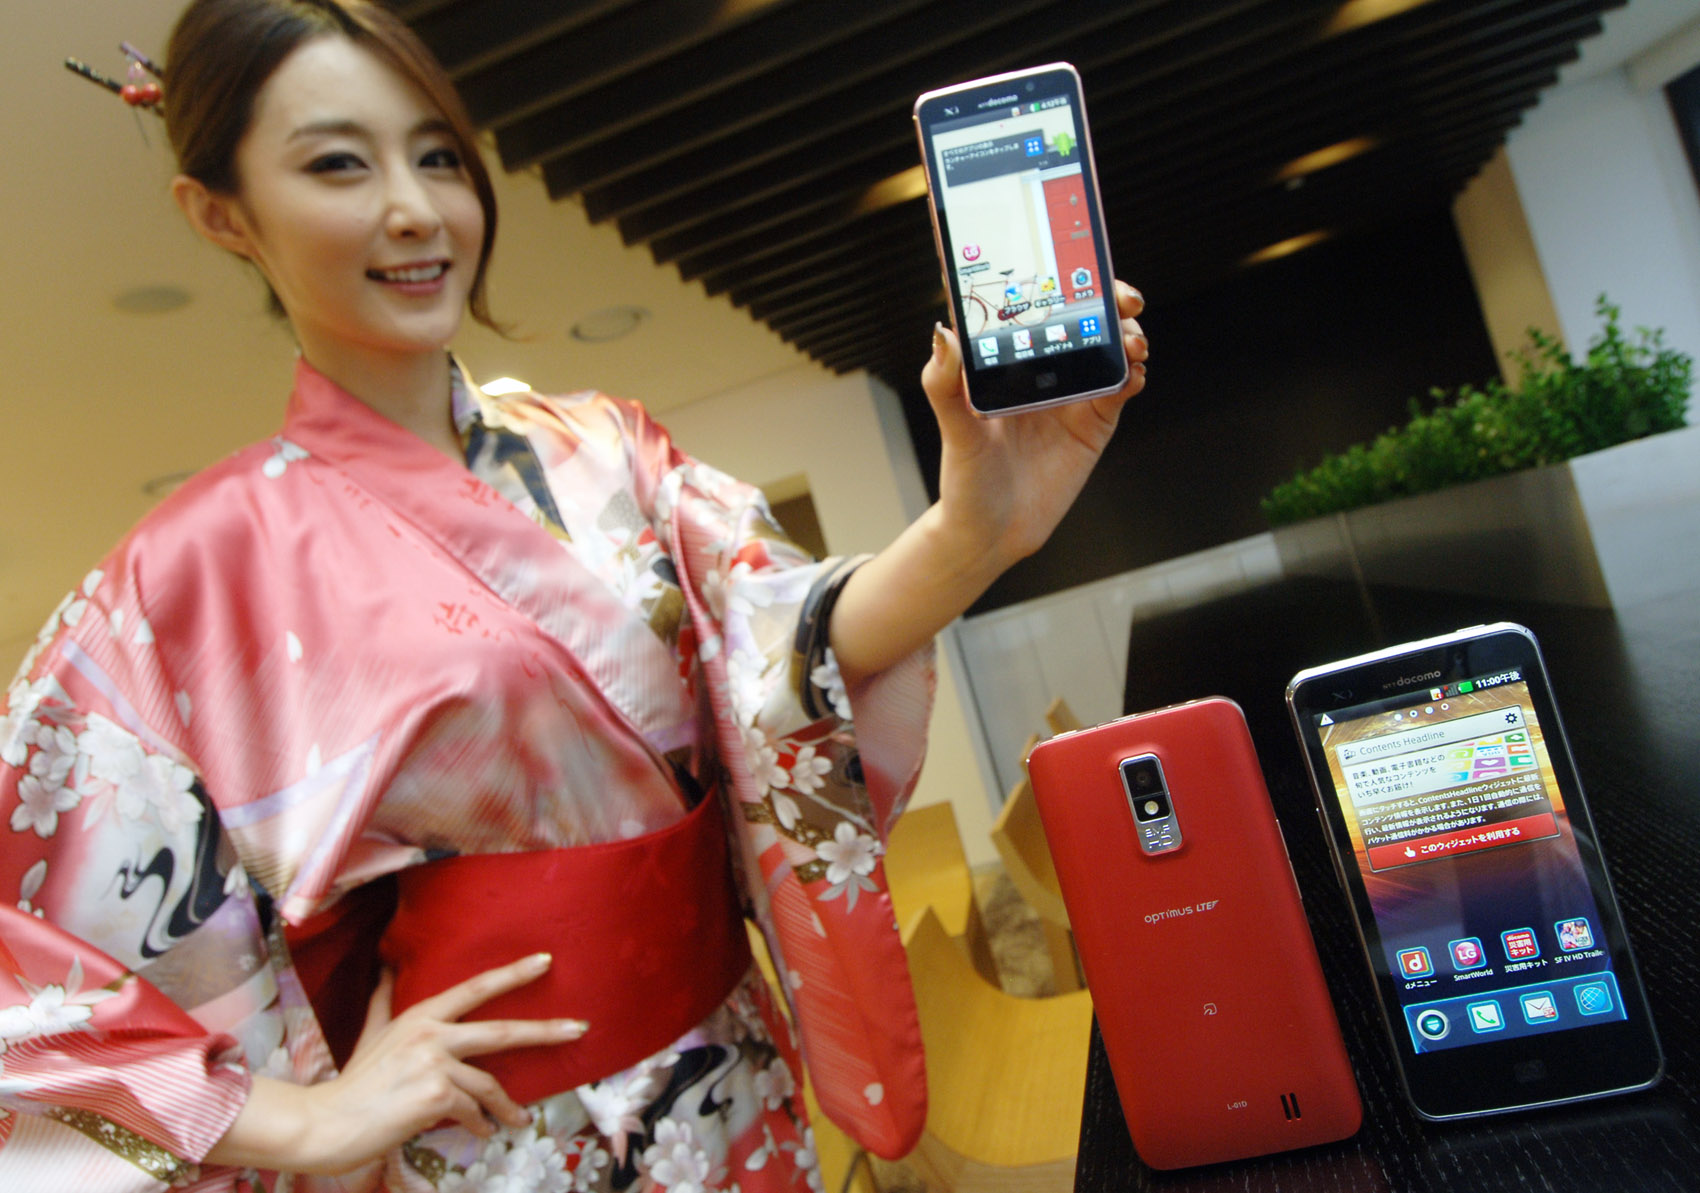 A woman in traditional Japanese clothing holds up LG Optimus LTE and shows its front view, while two LG Optimus LTEs showing front and rear views are displayed in front of her